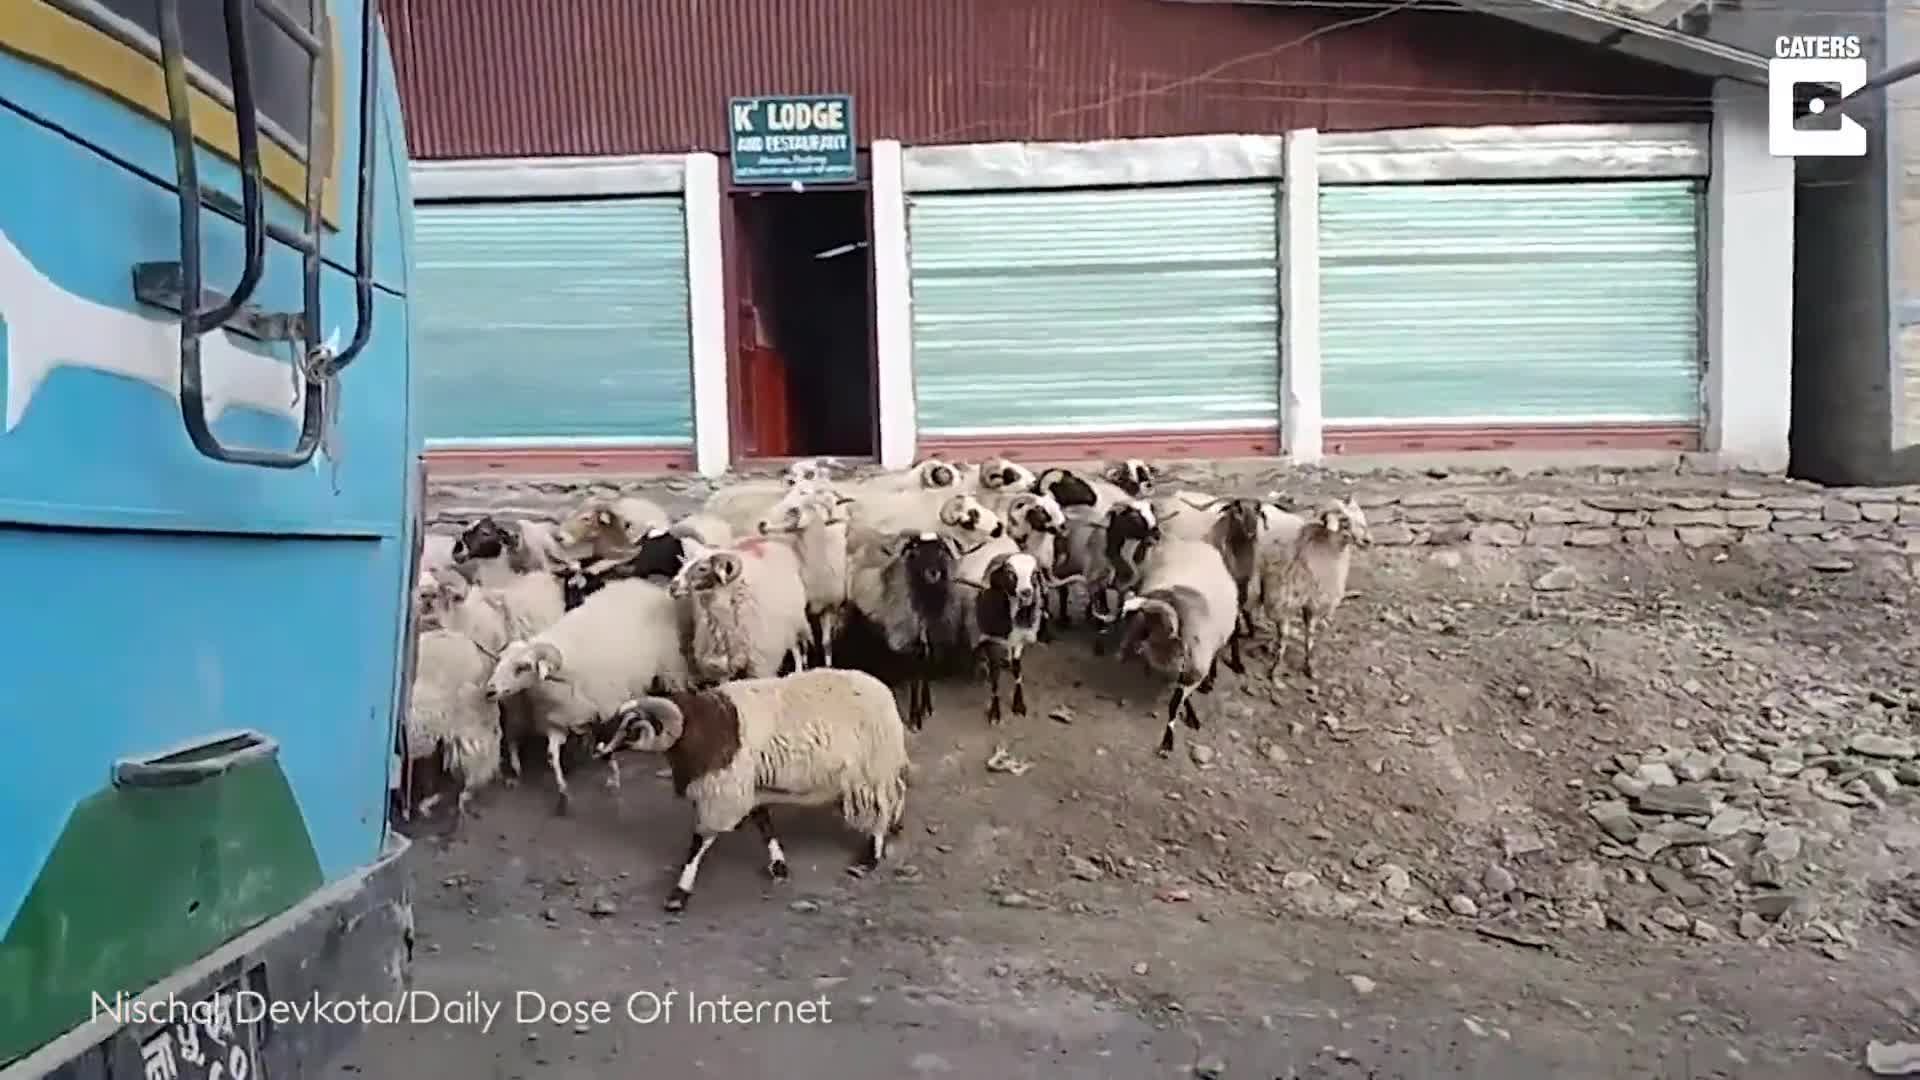 TRAFFIC RAM! HERD OF SHEEP CONTINUALLY RUN IN A CIRCLE AROUND A CAR